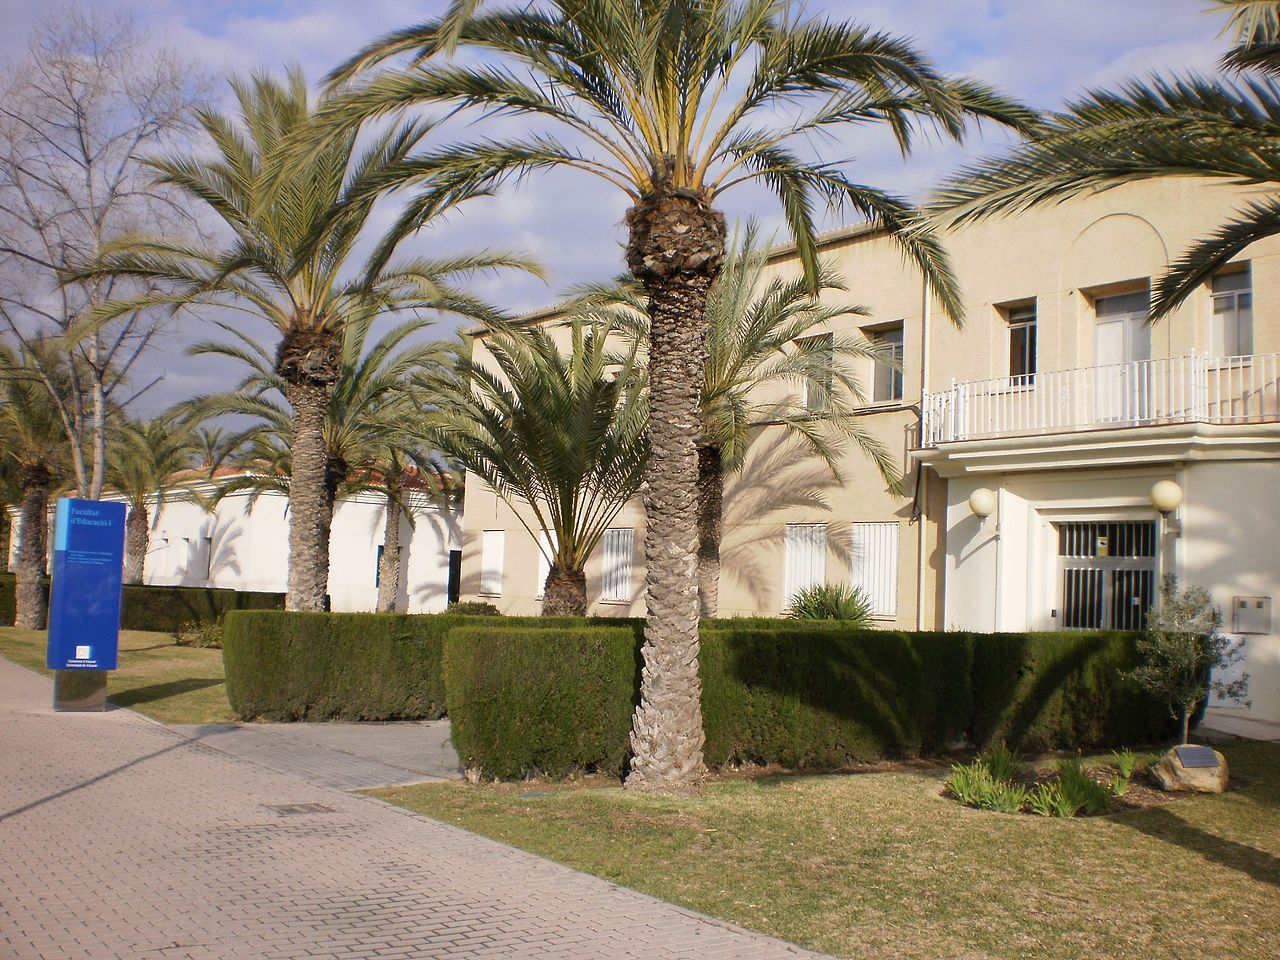 Campus of the University of Alicante